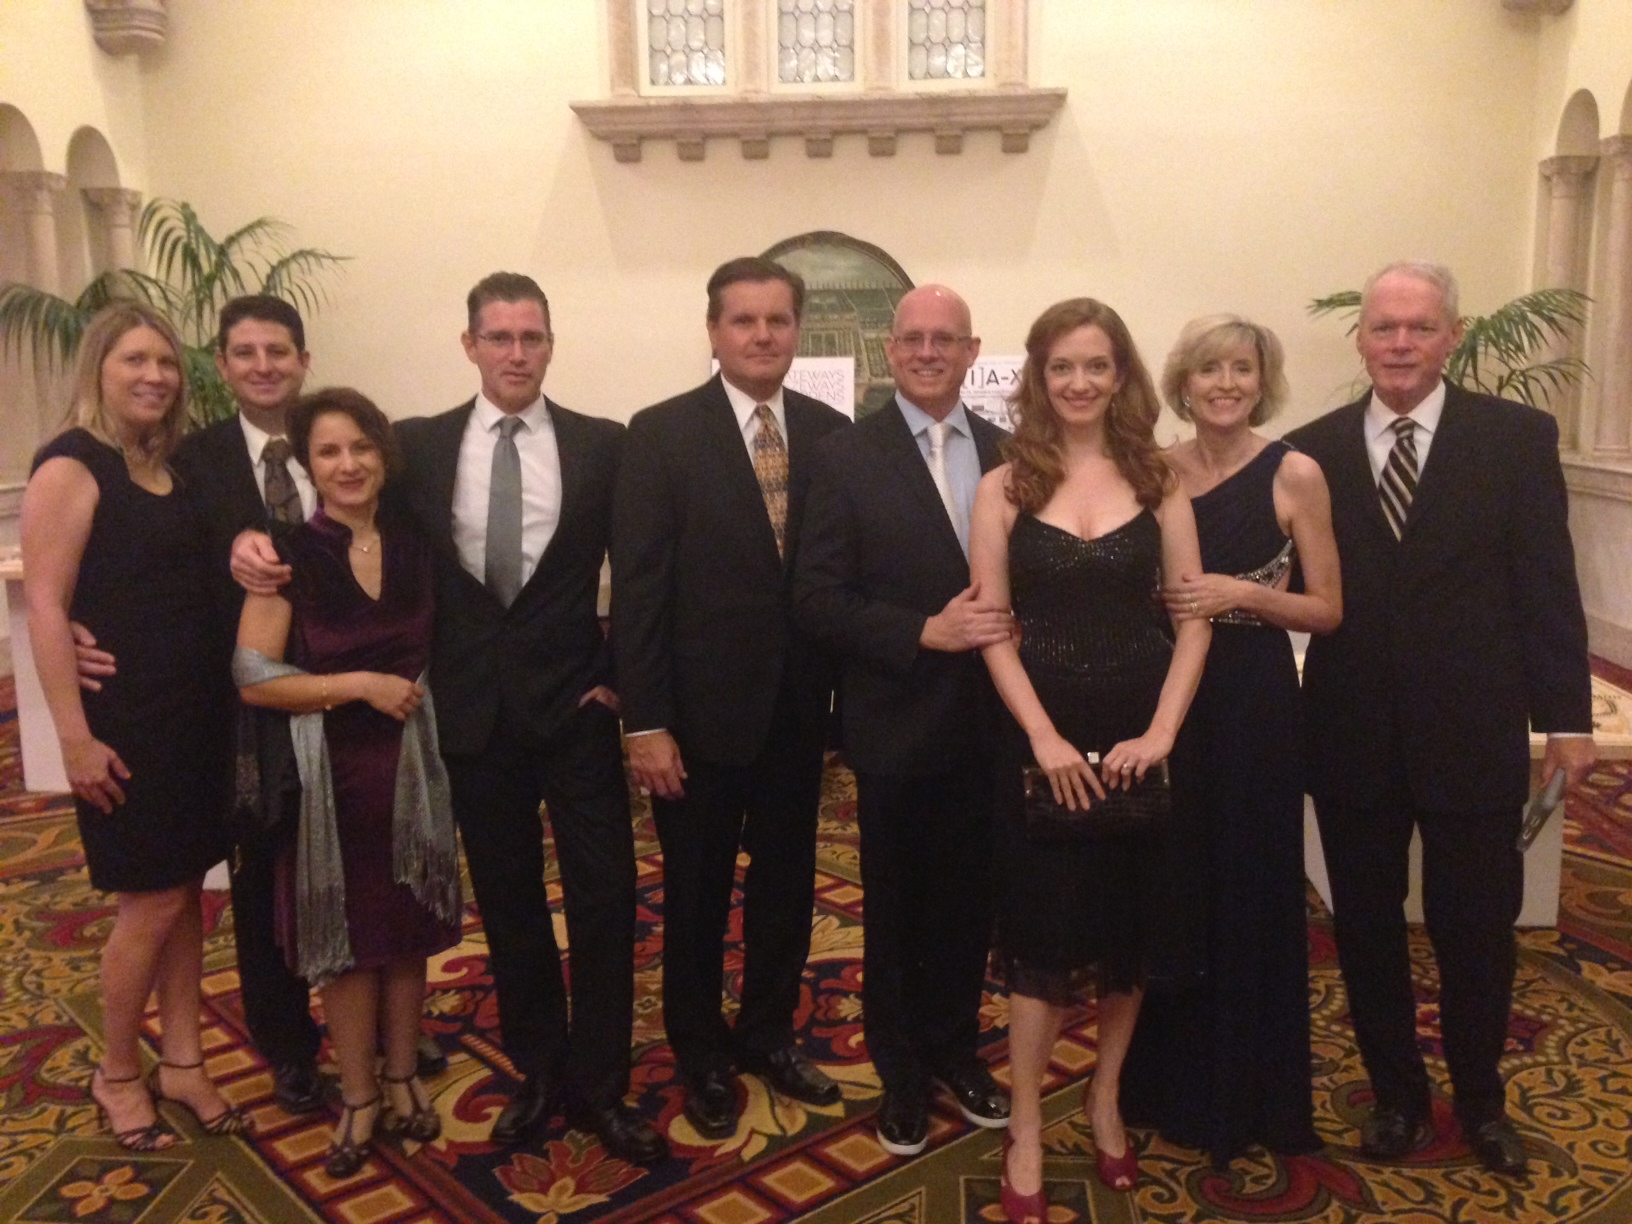 The Solstice team - Wendy, Todd, Selma, John, Chris, Jonathan, and Kathryn - with Cheryl and Harold Bubil.